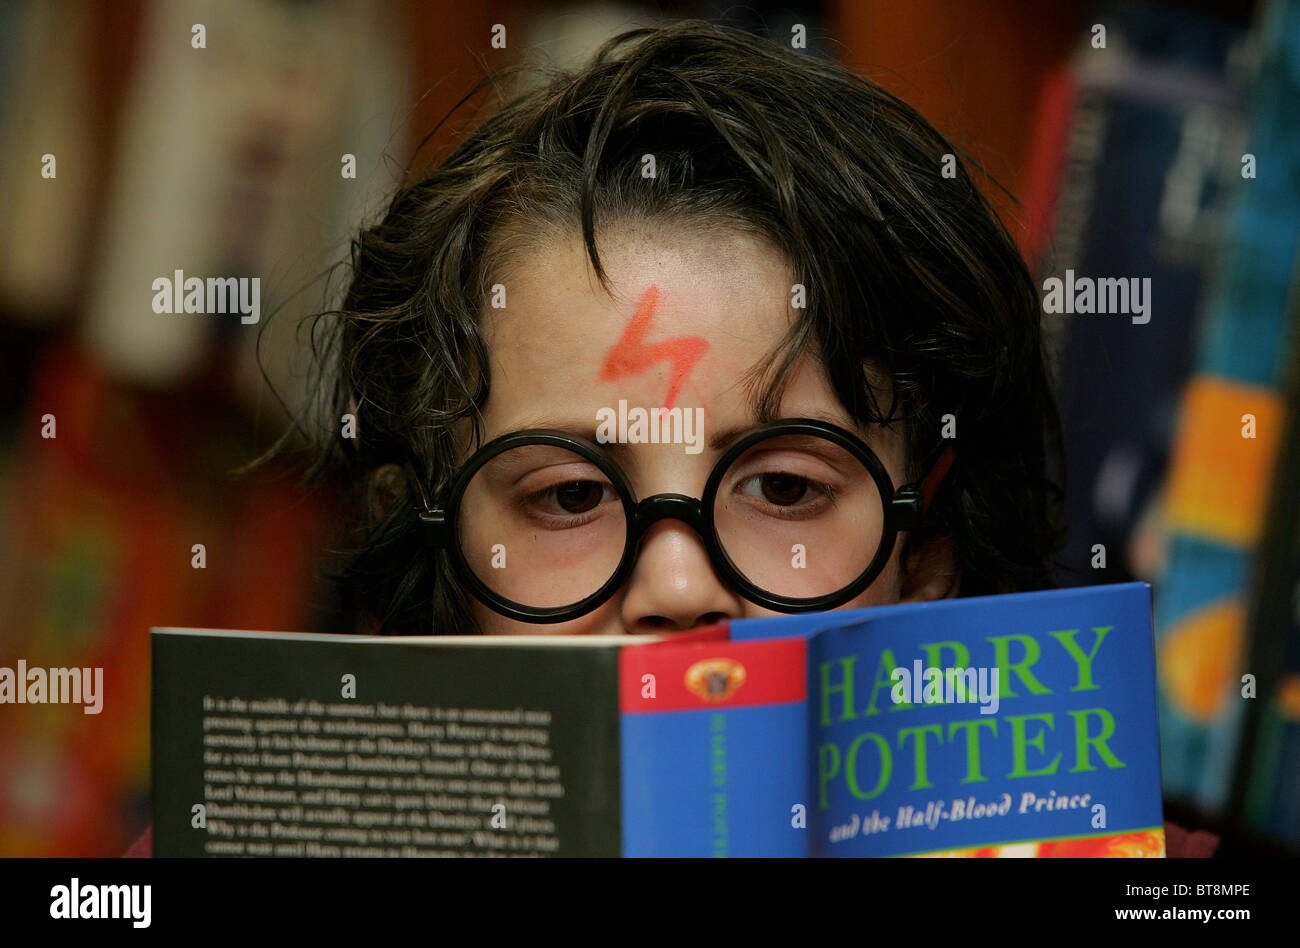 A young boy reading 'Harry Potter and the half blood prince' dressed up as Harry Potter Picture by James - Stock Image